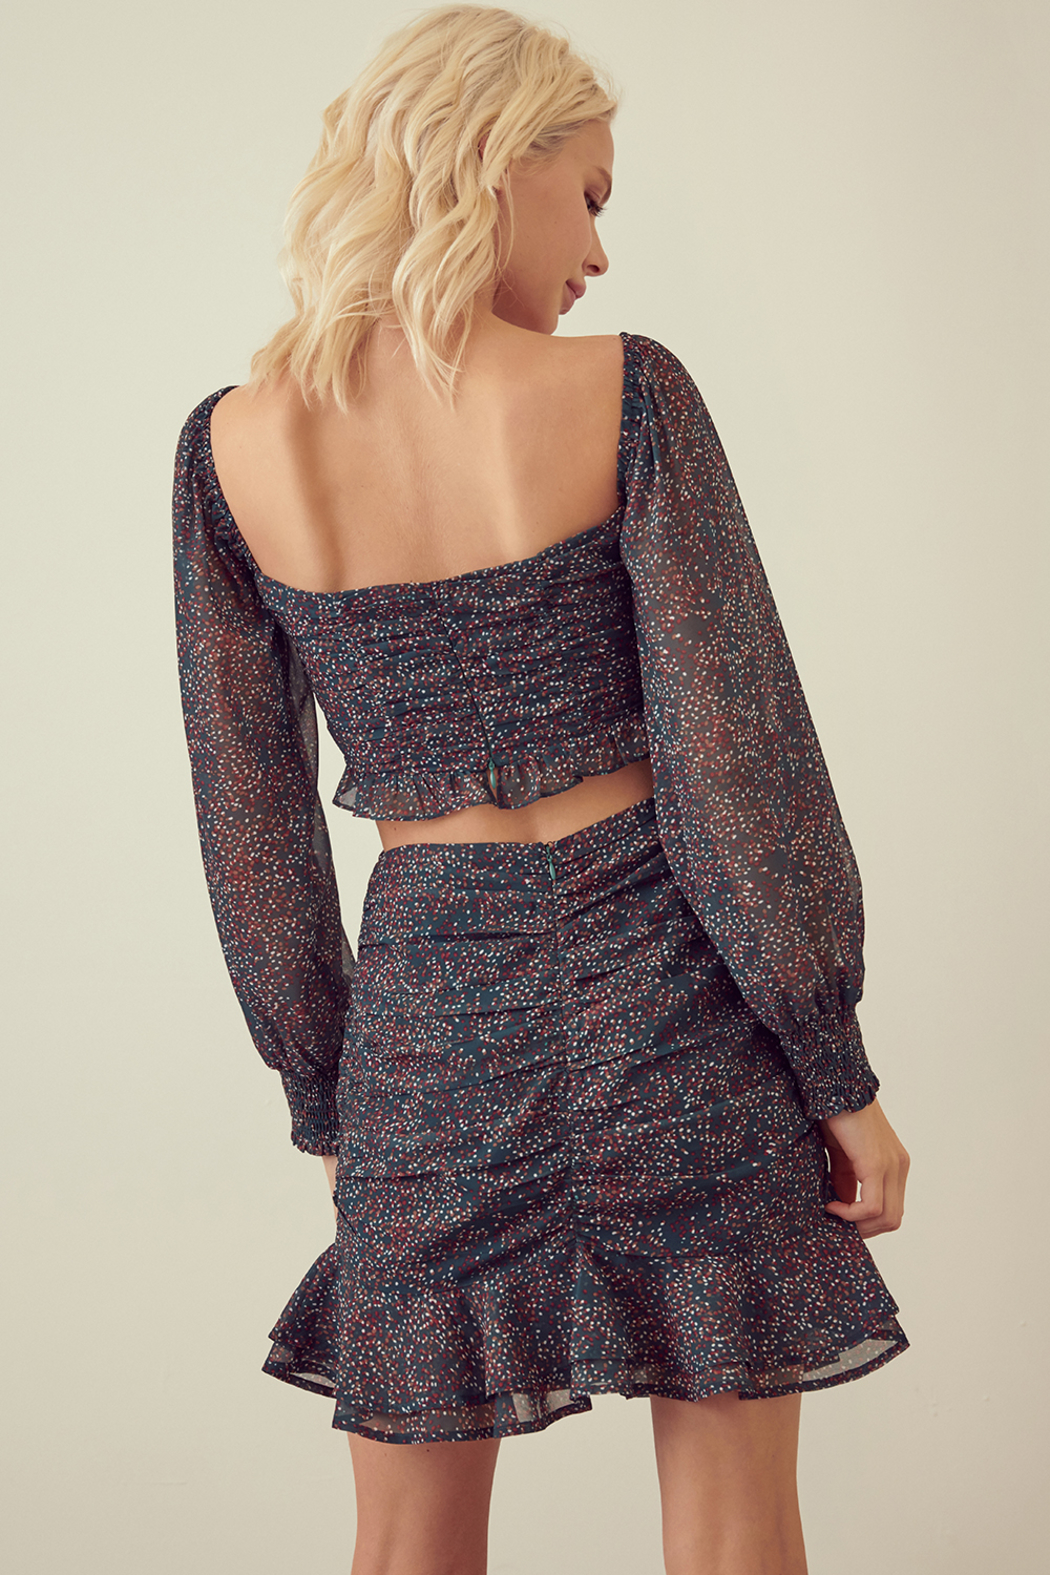 Green crop top STORIA SPECKLED SWEETHEART CROP TOP - Front Full Image